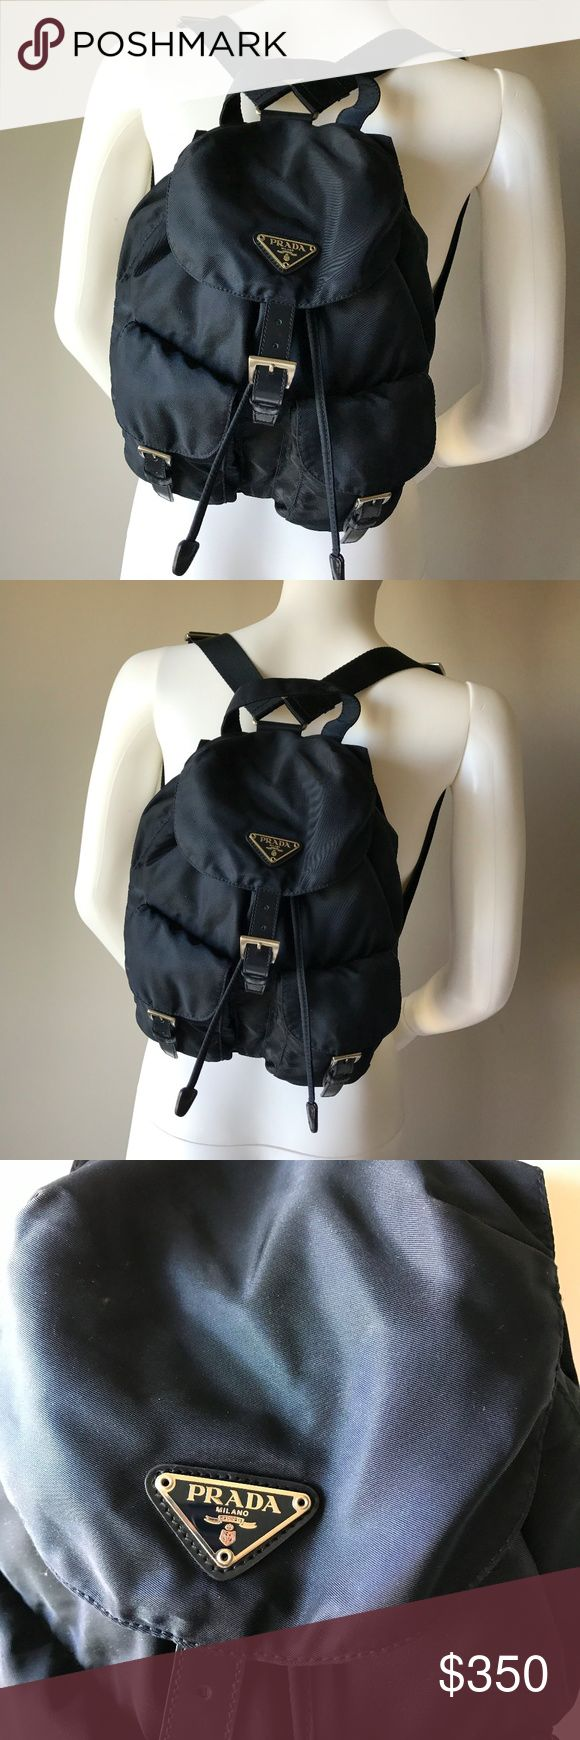 """Authentic Prada Vela Small Two-Pocket Backpack 100% authentic small Vela backpack. Please note that the dimensions are 11""""H x 9.8""""W x 5""""D.  • Web top handle and adjustable shoulder straps; 47.3""""L. • Front flap pockets with saffiano leather buckles. • Buckled flap top with logo plate. • Drawstring cinches top. • Made in Italy. Prada Bags Backpacks"""